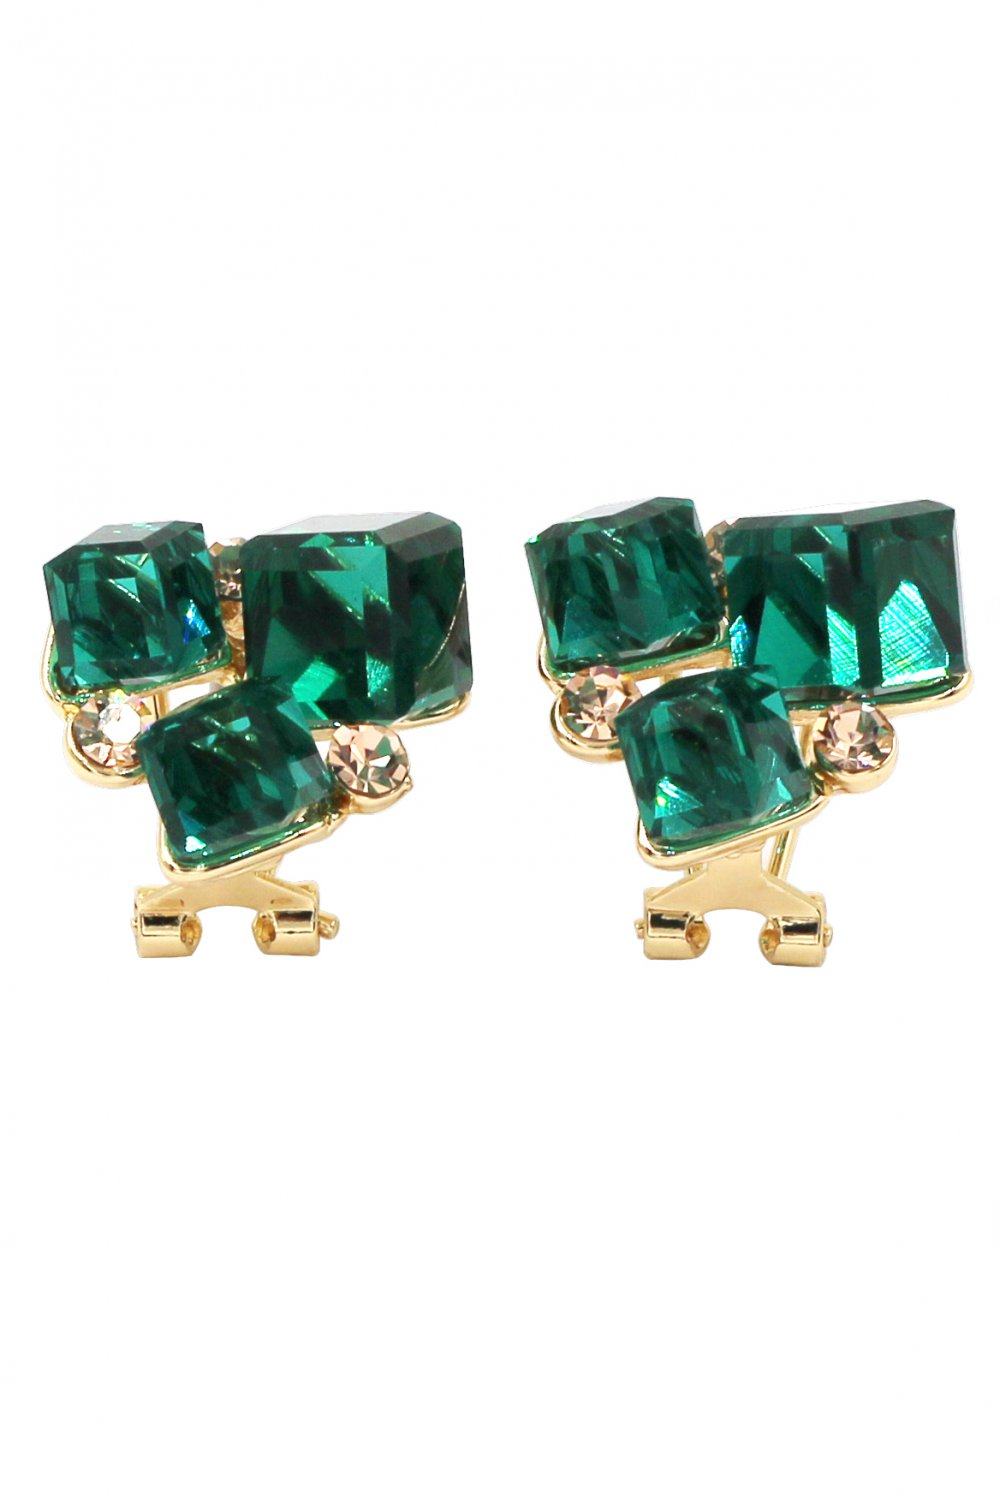 Square green crystal golden earrings